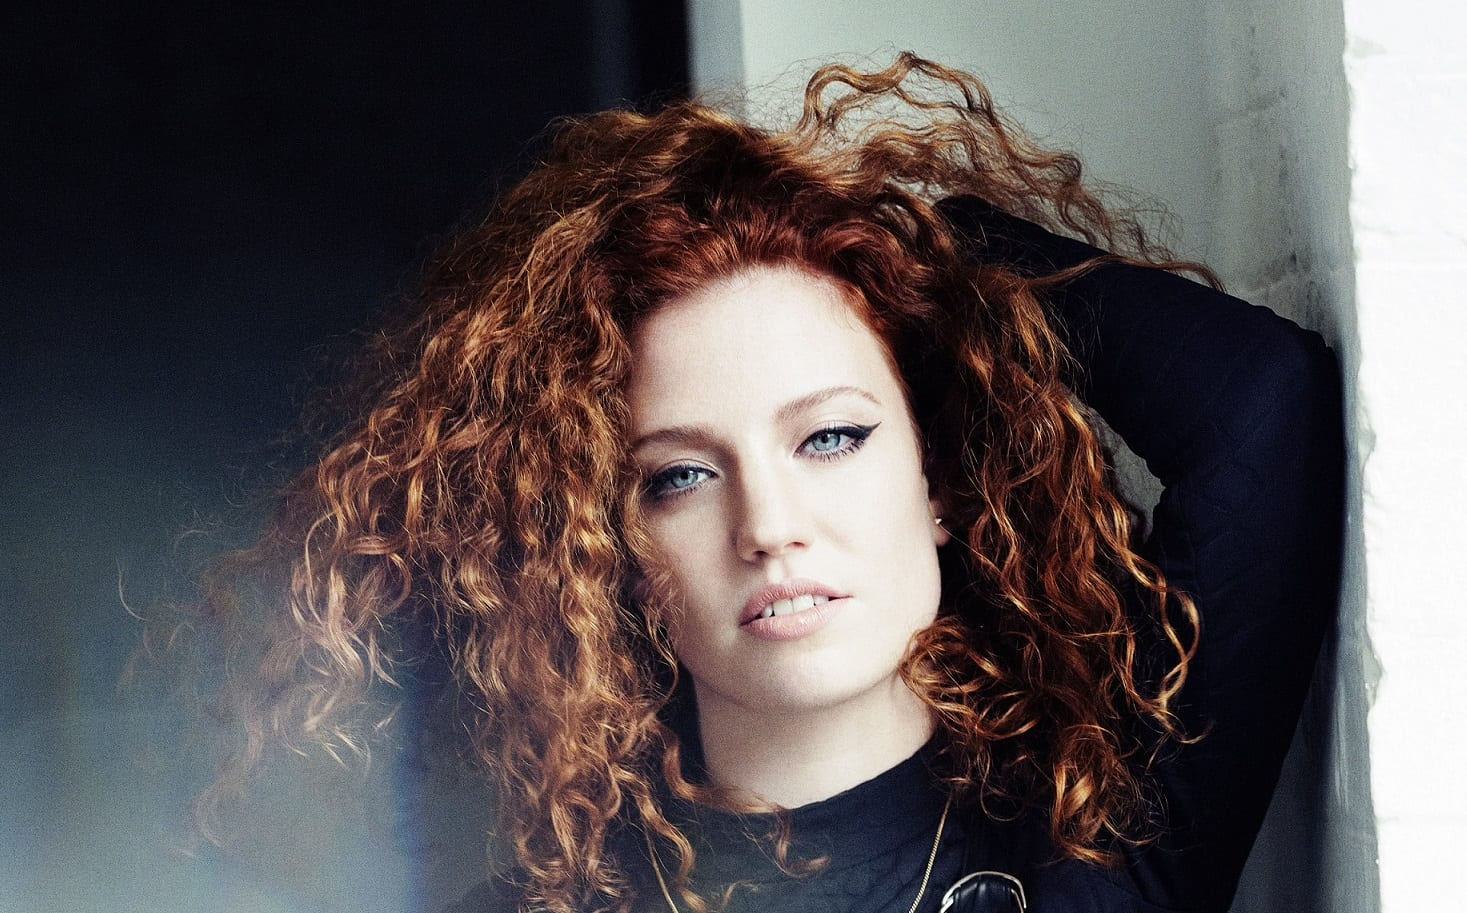 Record Crowd Is 'Right Here' As Chart-Topper Jess Glynne Wows Carlisle Racecourse